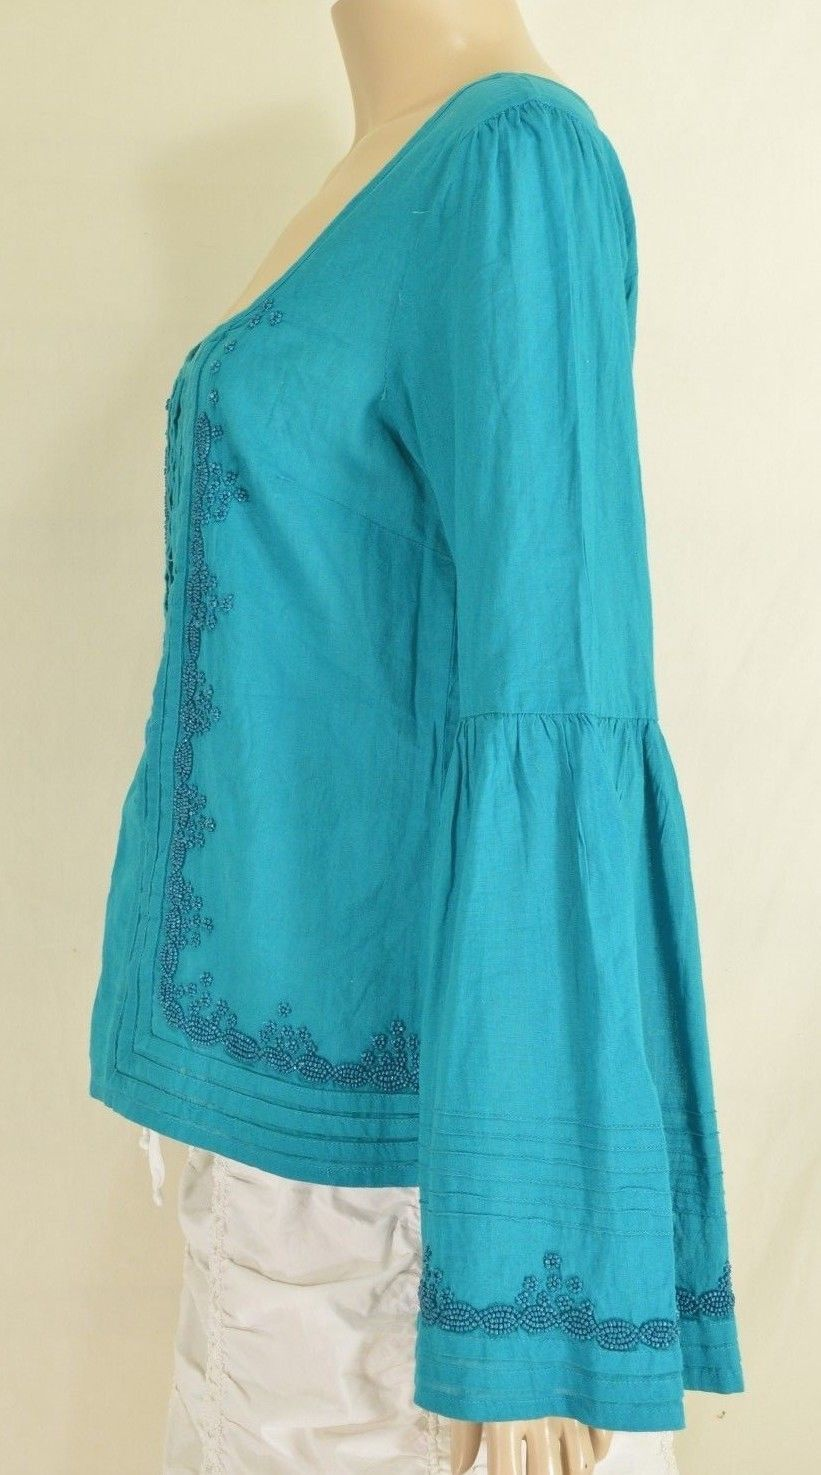 Free People top SZ S turquoise teal beaded long bell sleeves hippie boho gypsy image 2